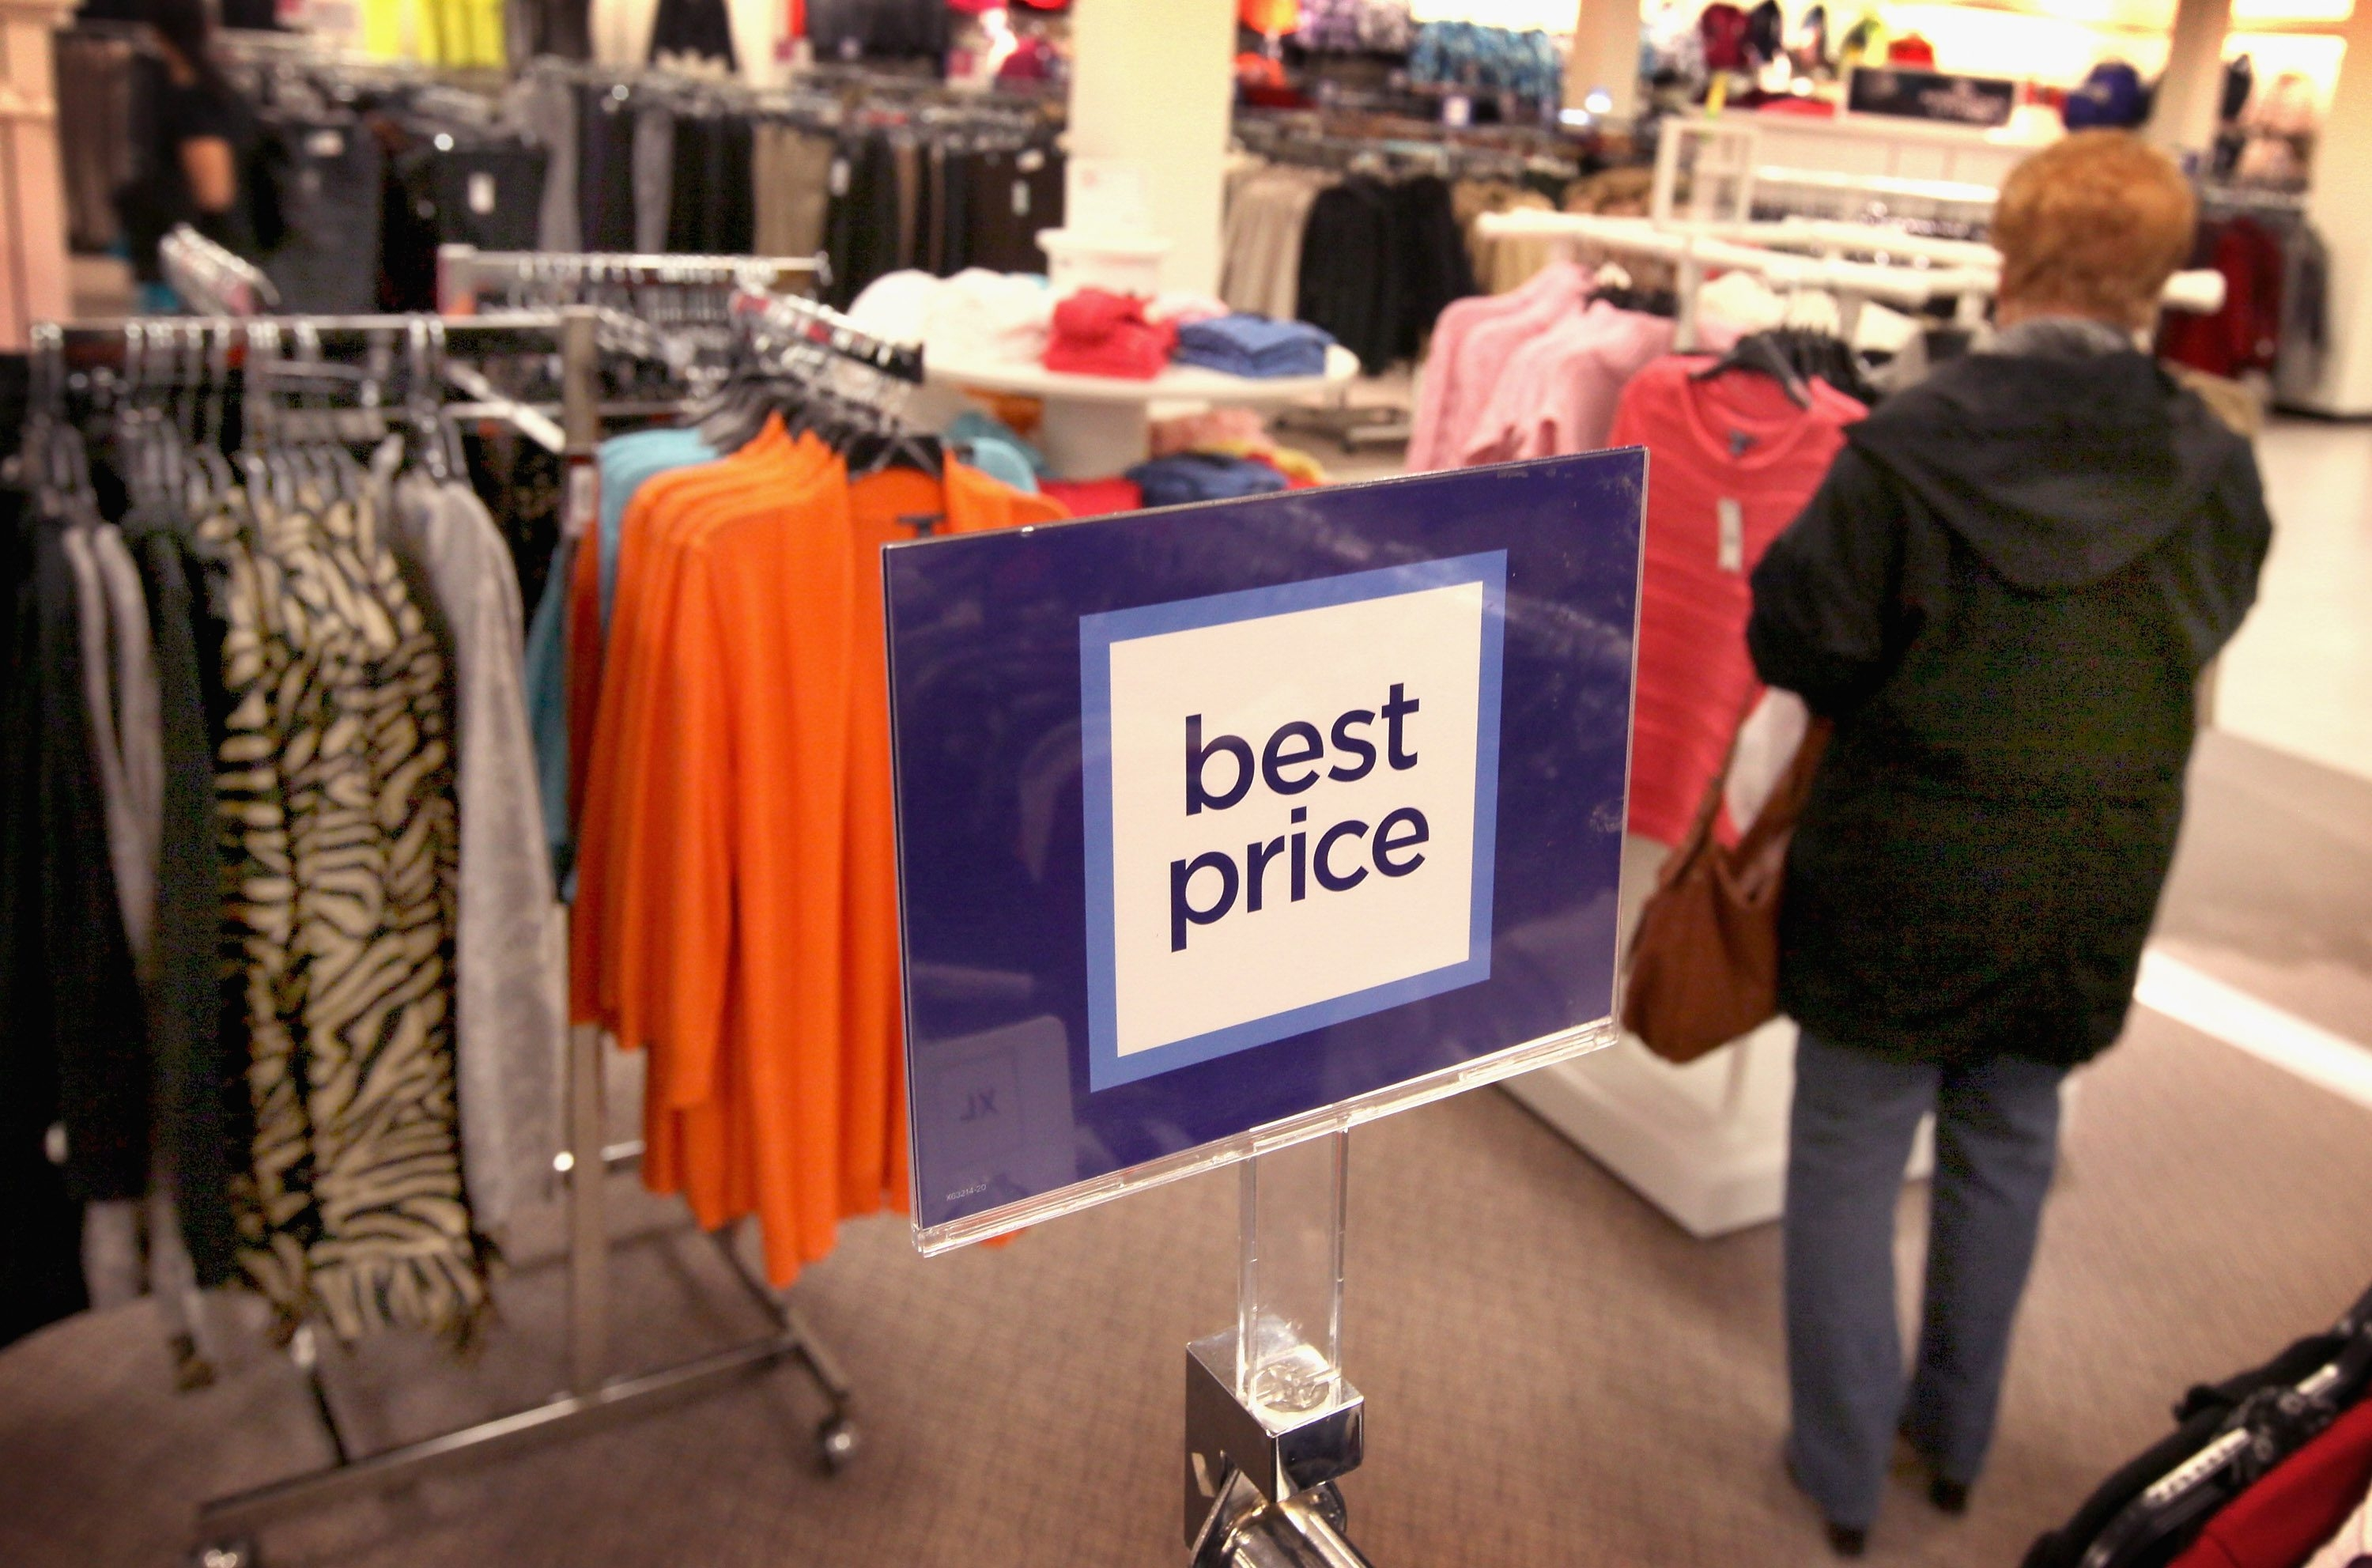 A sign displays a new pricing stategy at a JCPenney store in the North Riverside Park Mall on Feb. 1, 2012, in North Riverside, Illinois.